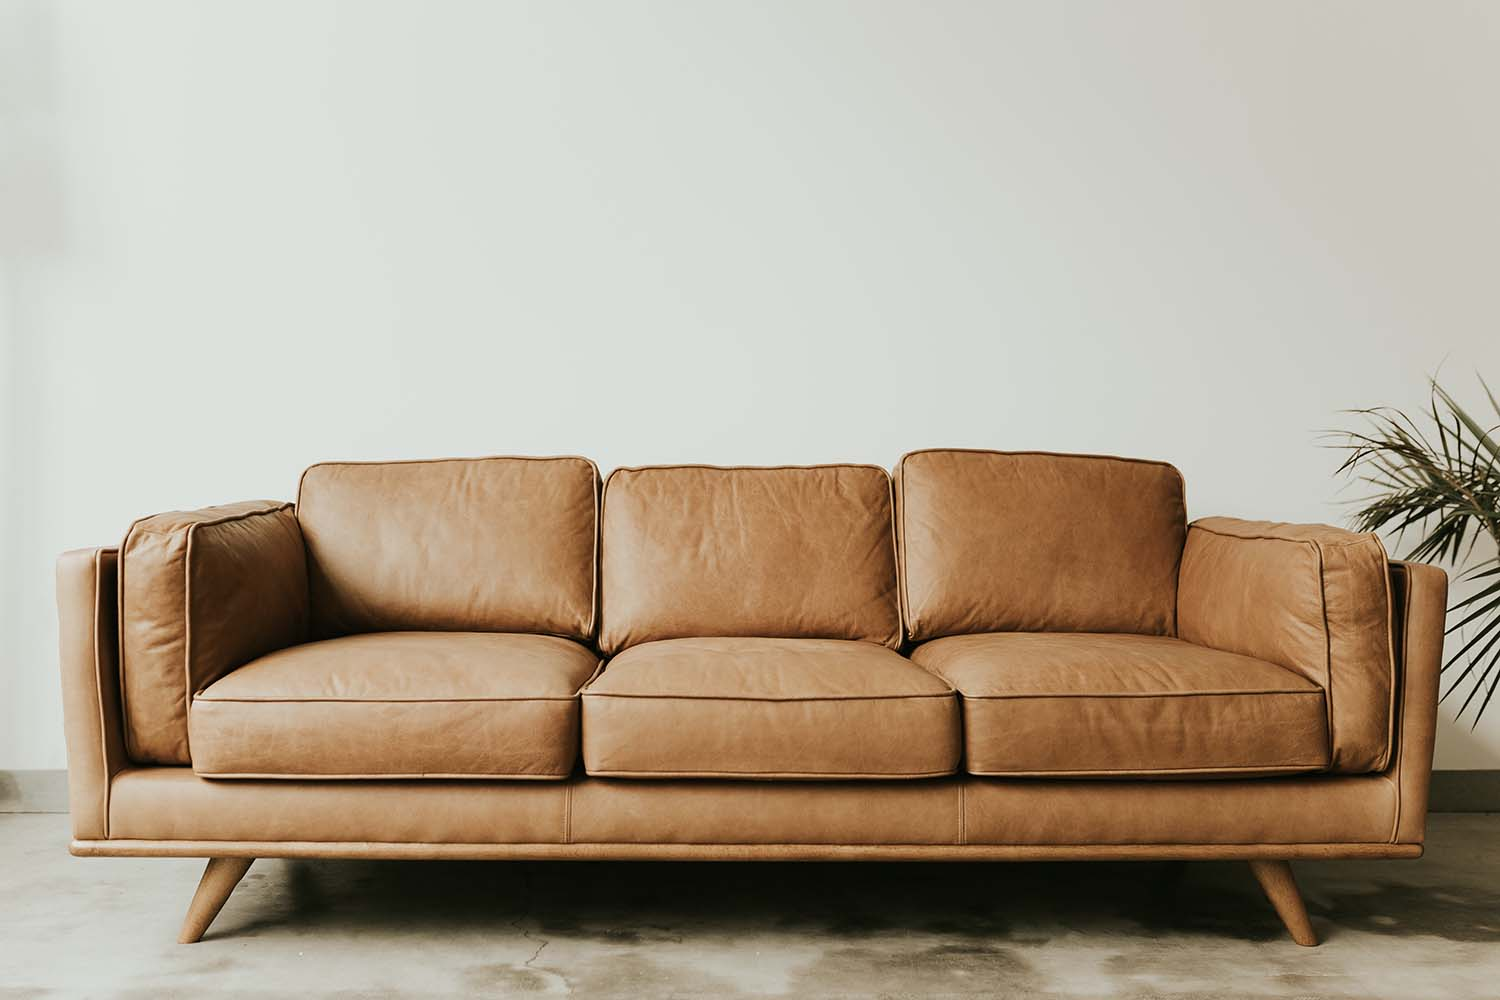 What Should You Look For In A New Sofa?